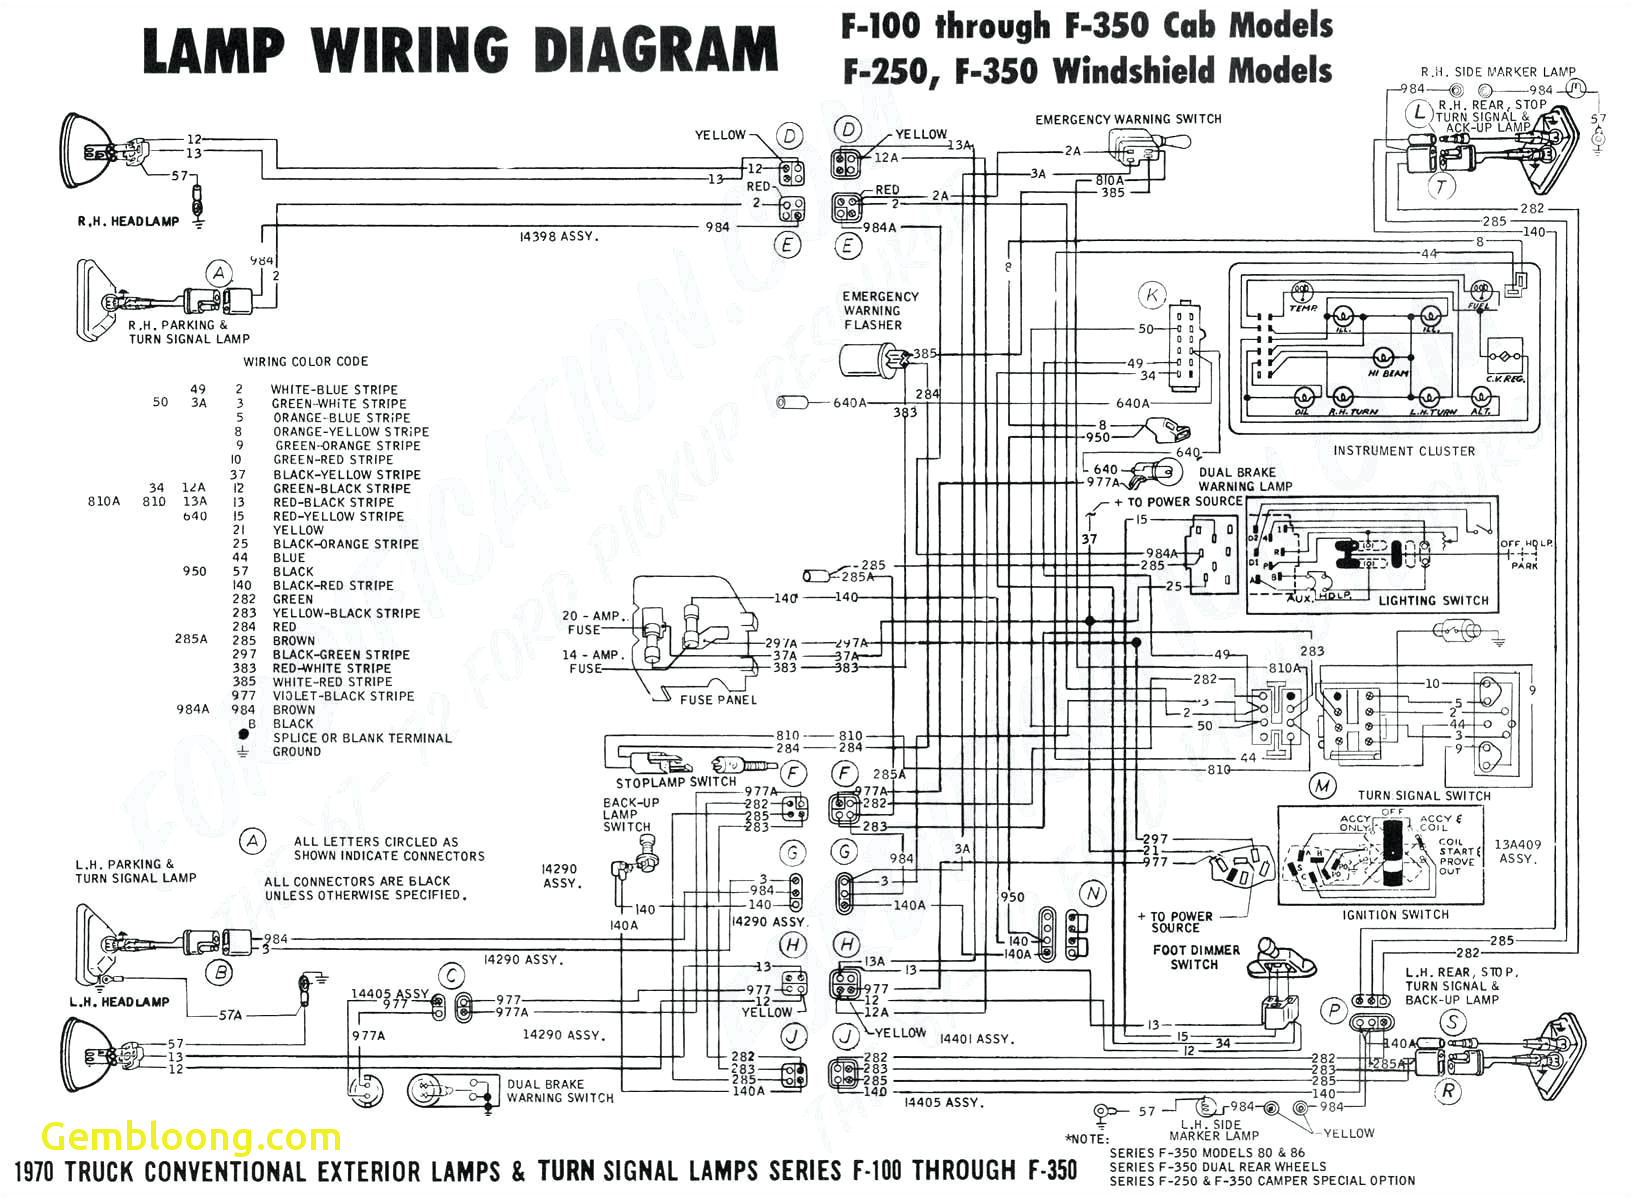 2000 buick lesabre heater not working fresh 2000 buick lesabre 2000 buick lesabre wiring diagram model